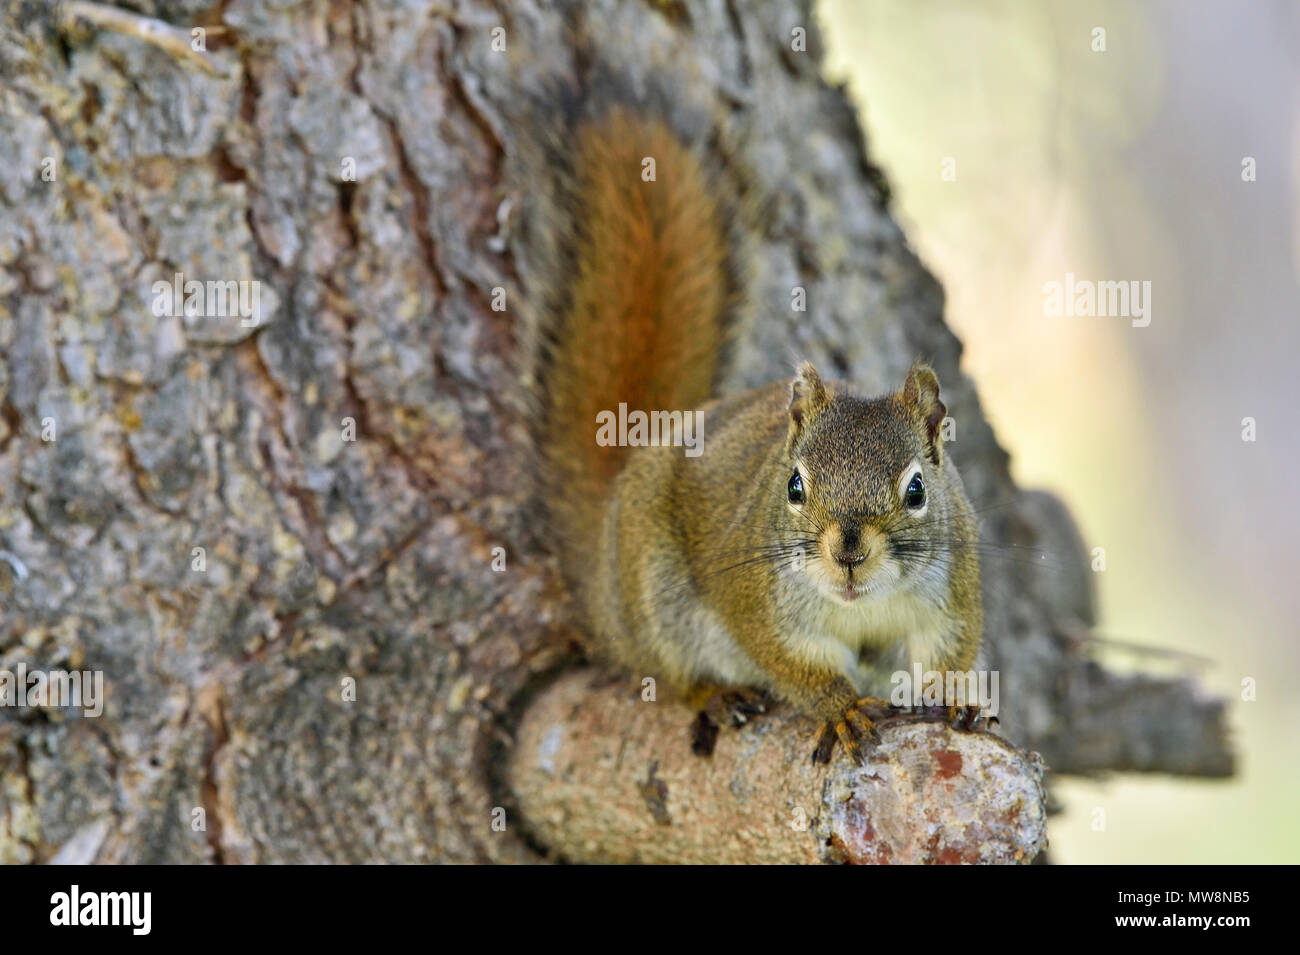 A red squirrel 'Tamiasciurus hudsonicus'; perched on branch of a spruce tree in rural Alberta Canada - Stock Image